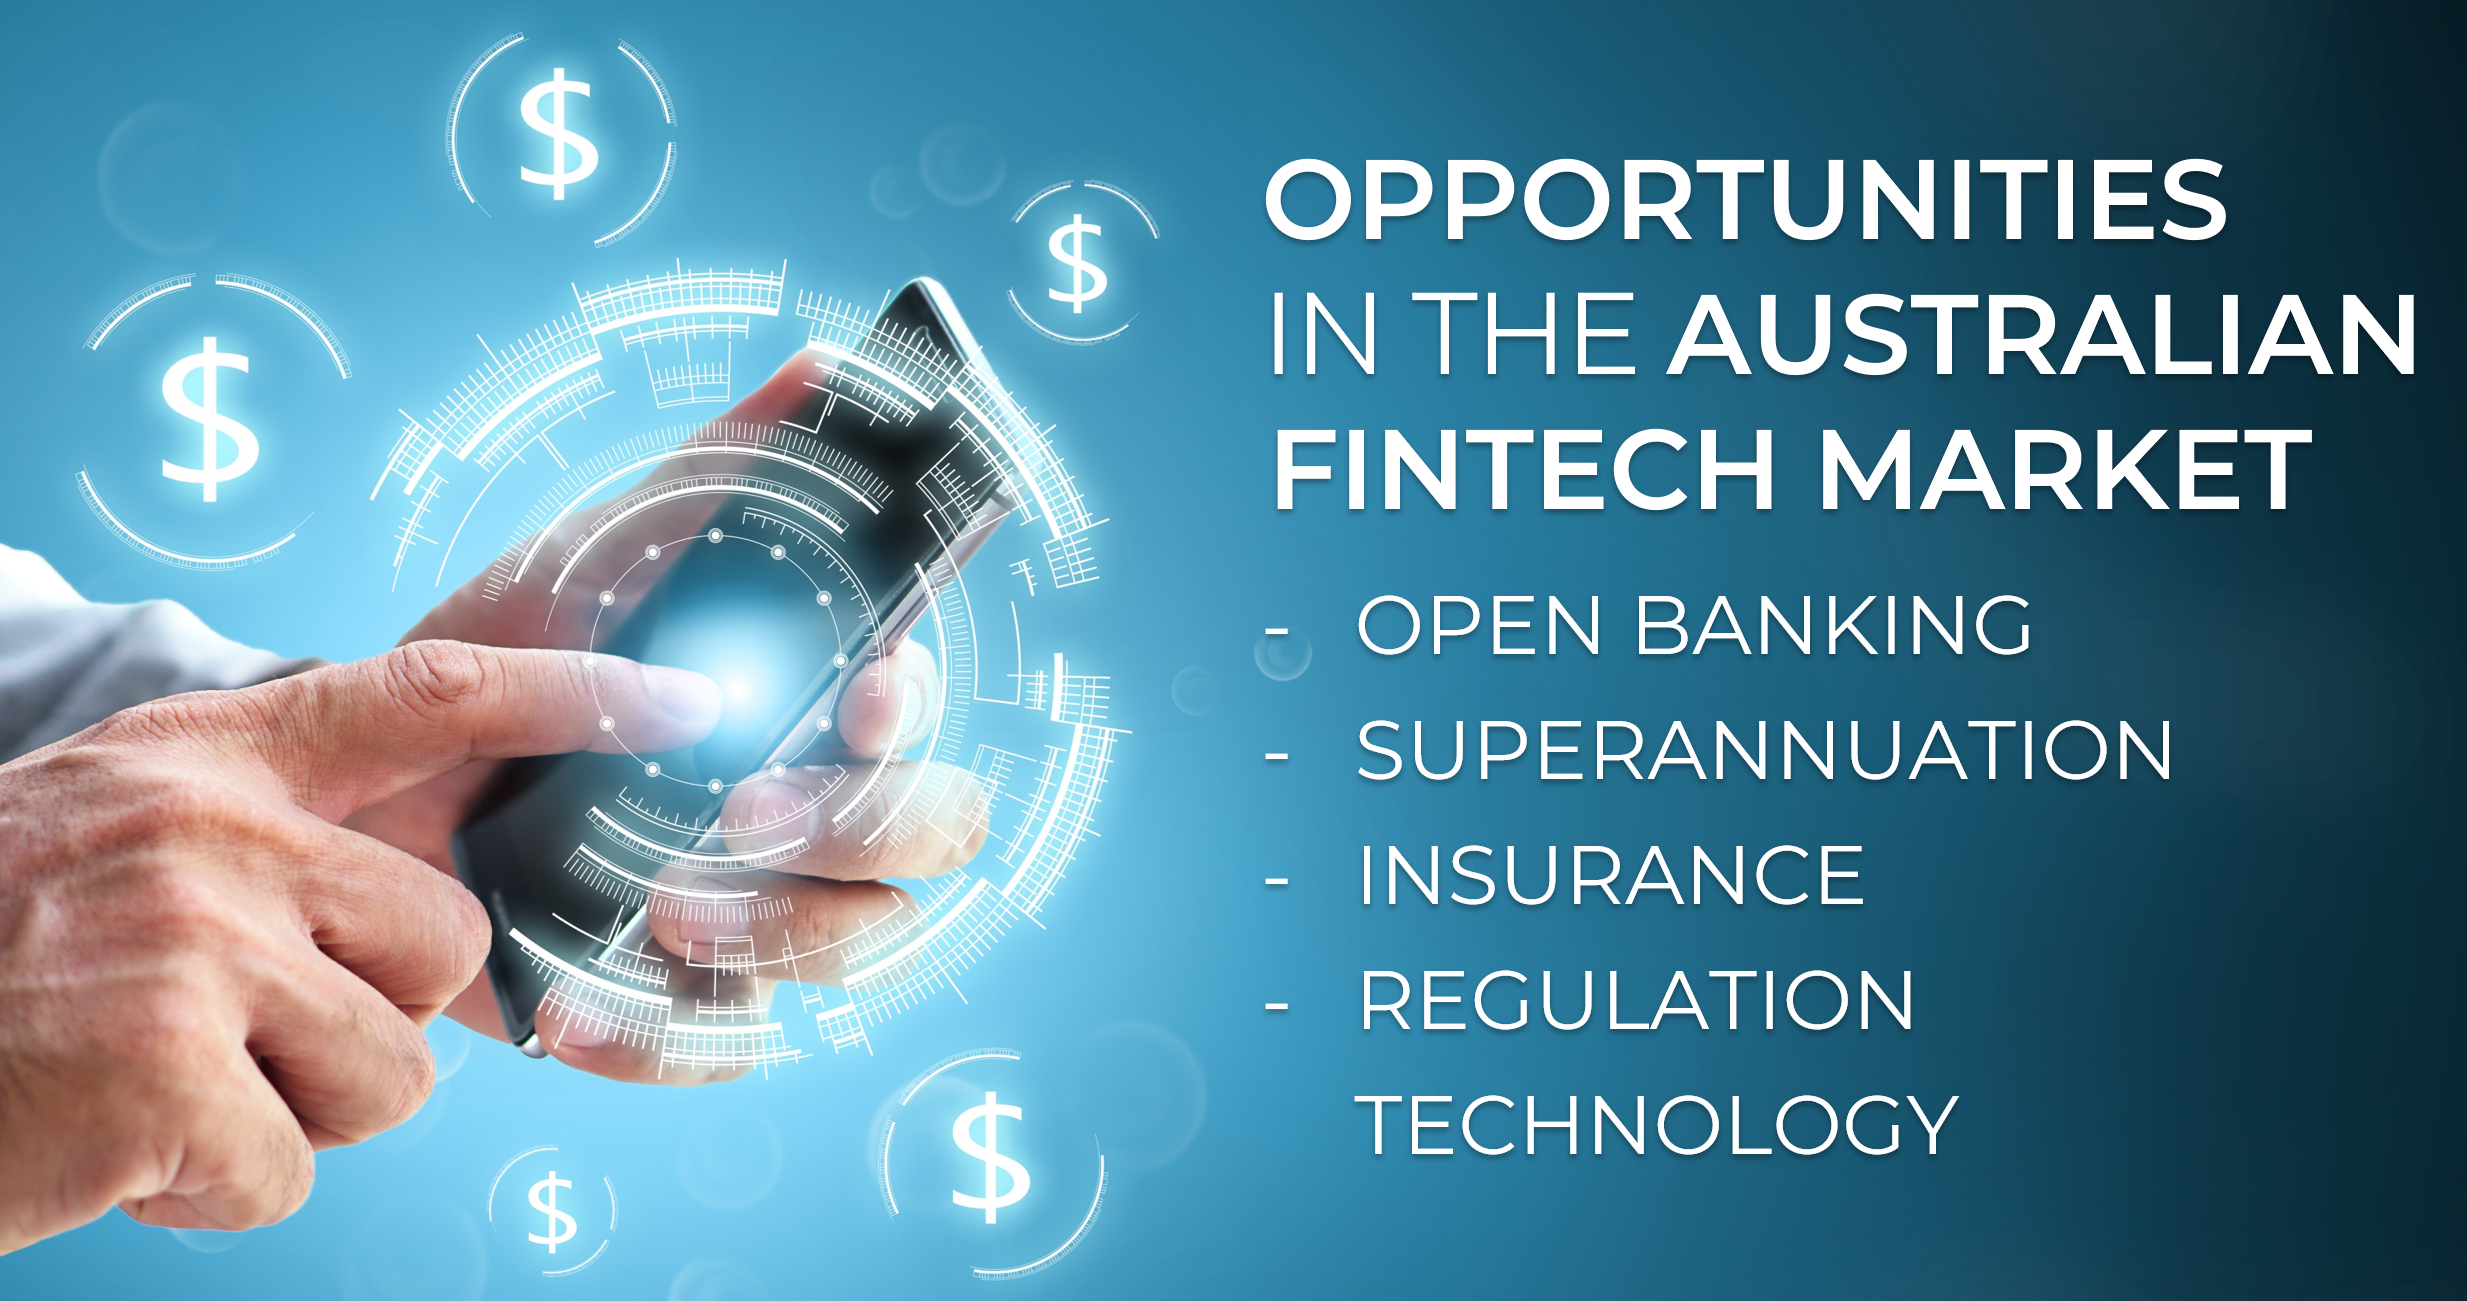 Fintech_digital_campaign_-_Social_Content_LN_TEXT_-and-_STILL_-_Opportunities_1v2.png